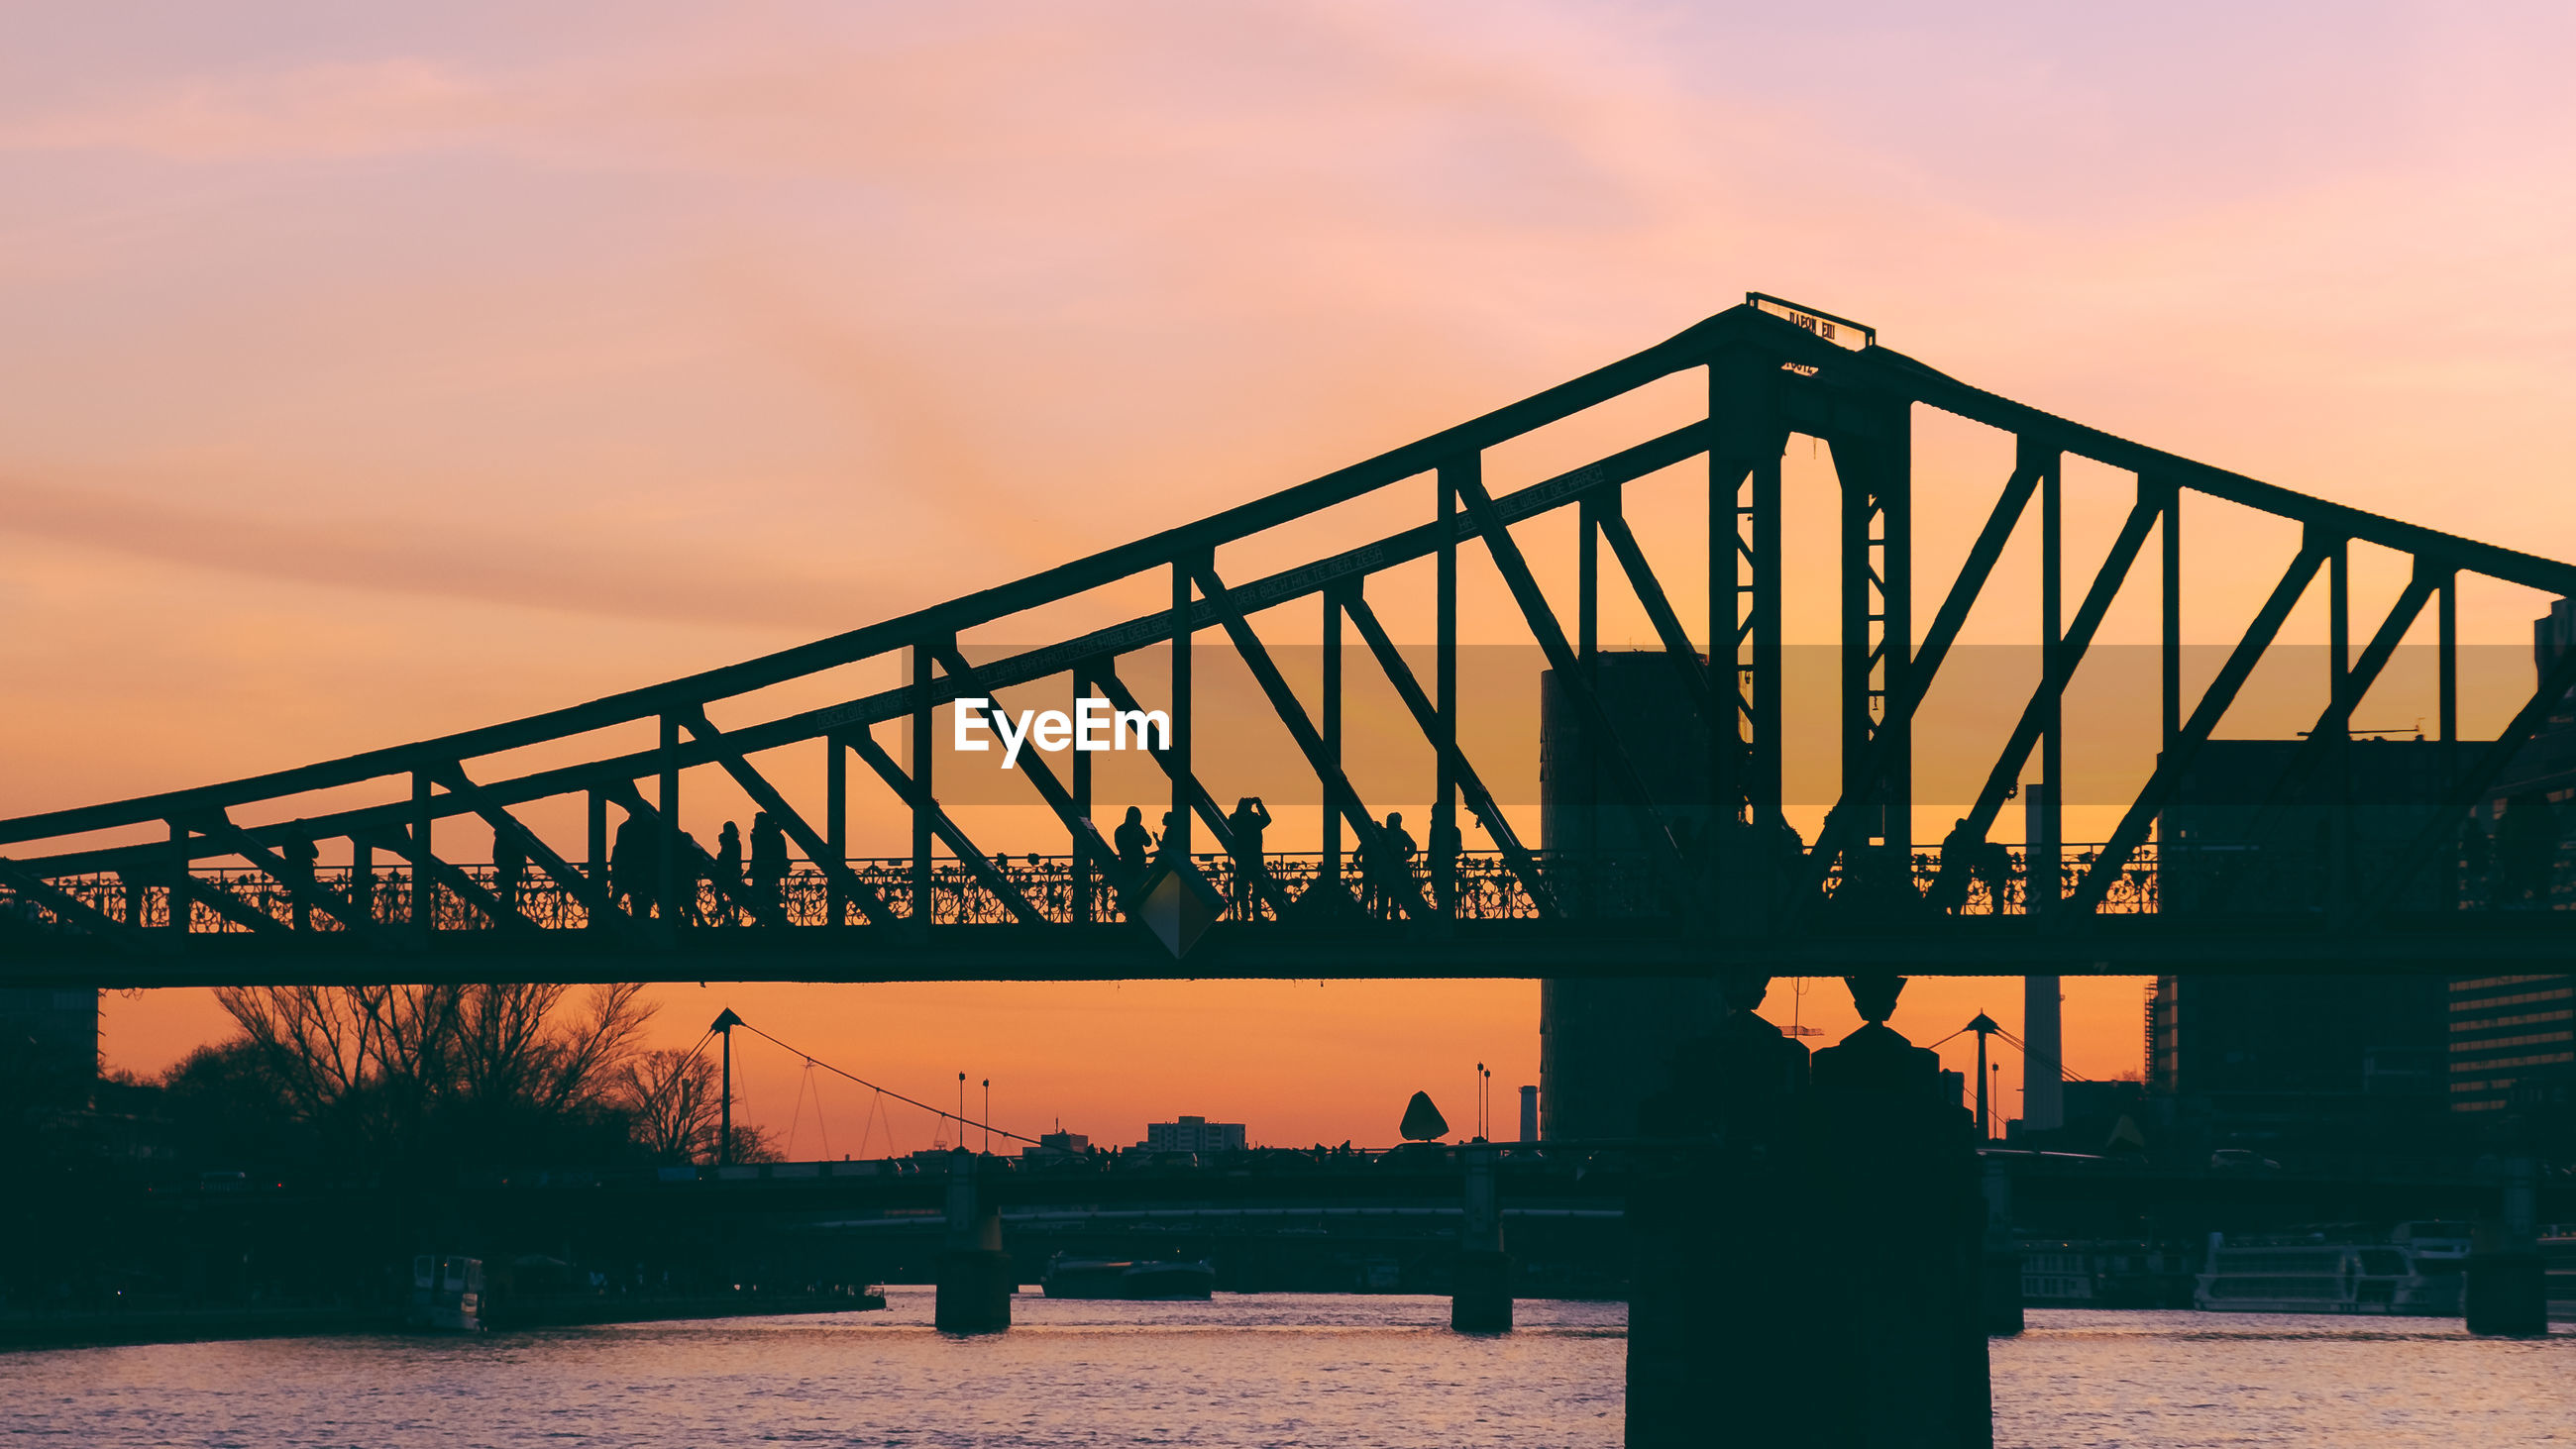 Silhouette of metallic bridge over river against sky during sunset